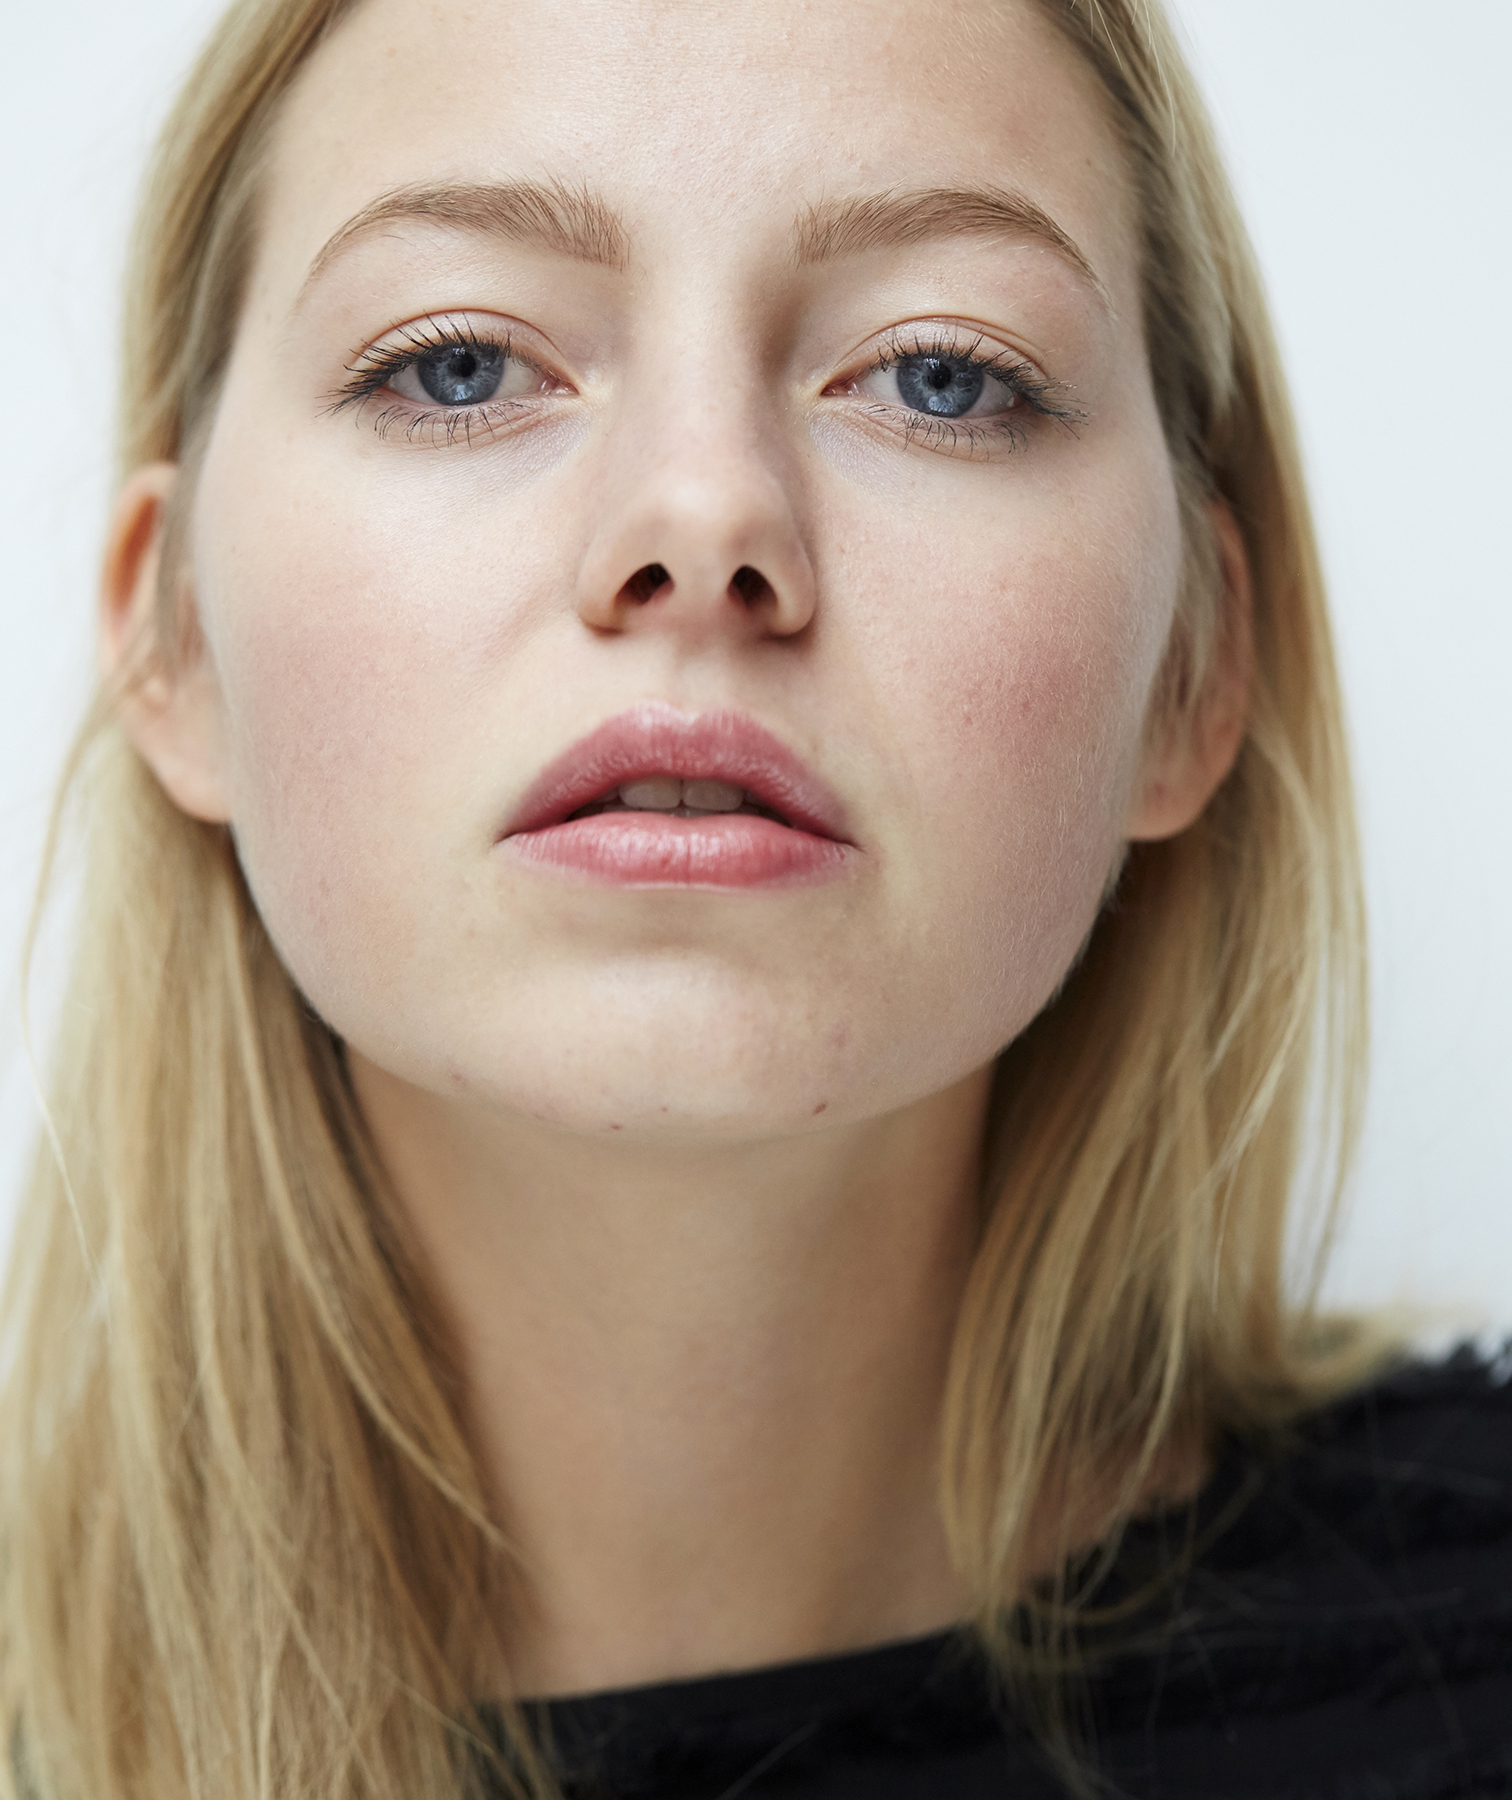 Blonde model with fair skin and blue eyes